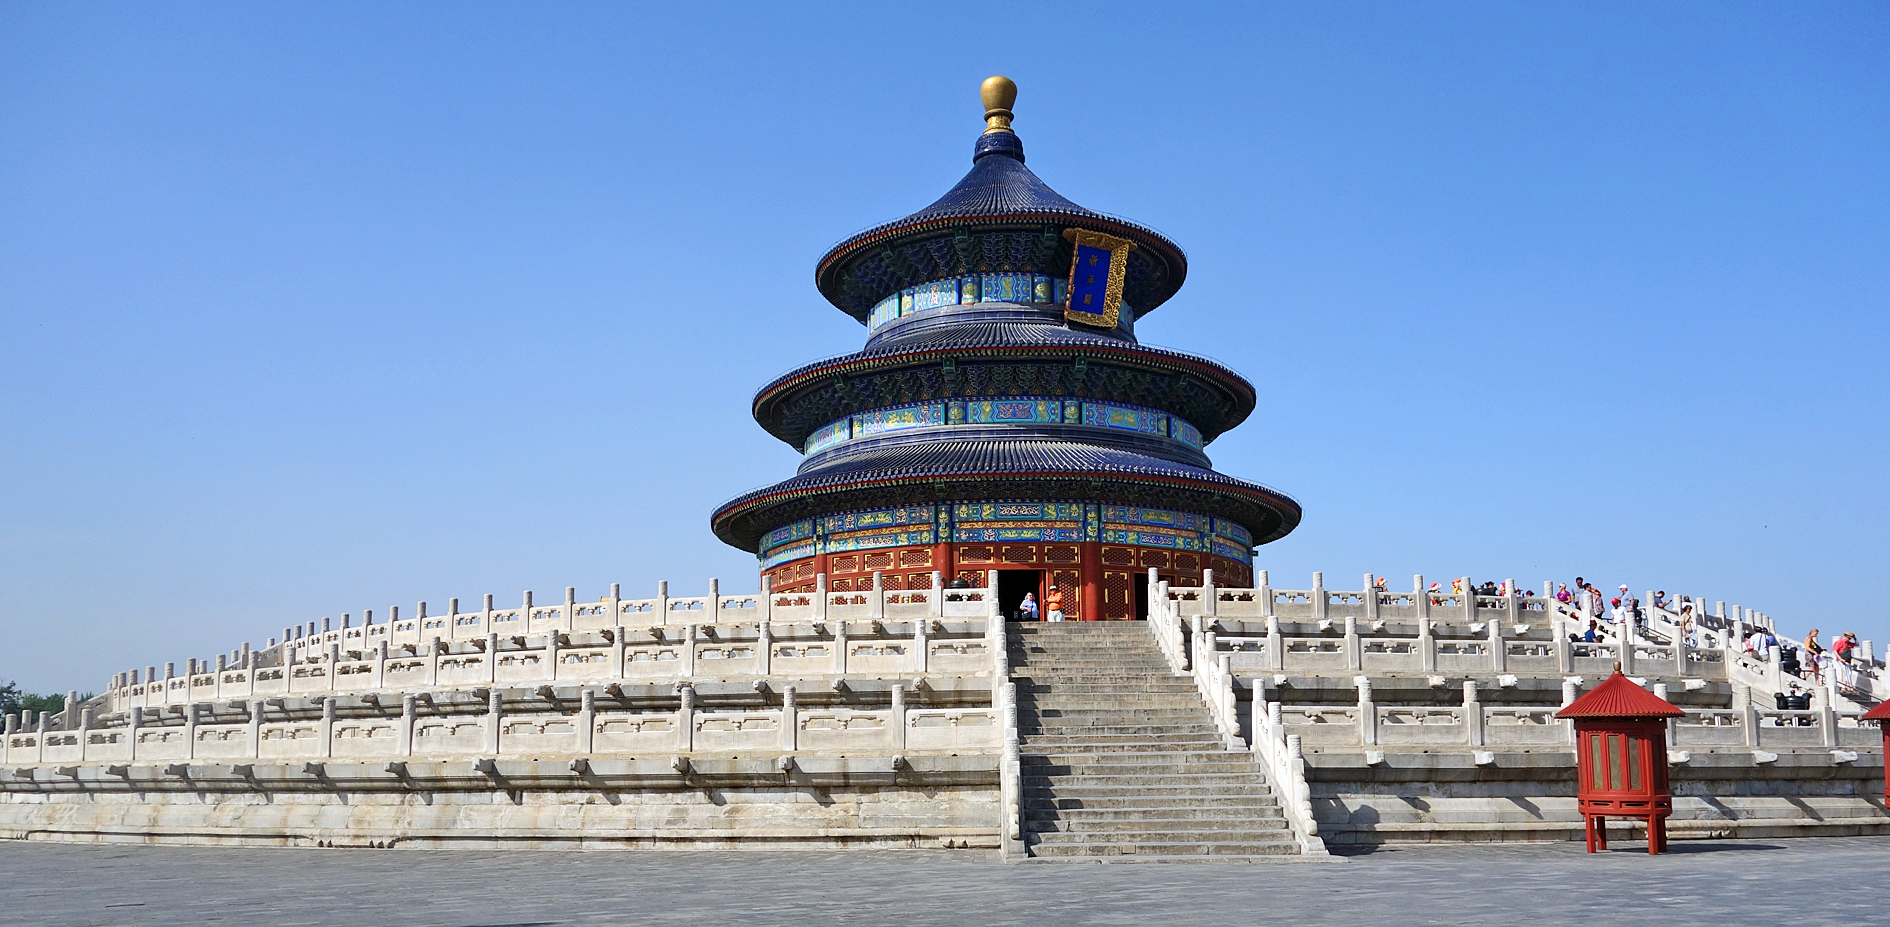 Beijing: The Temple of Heaven